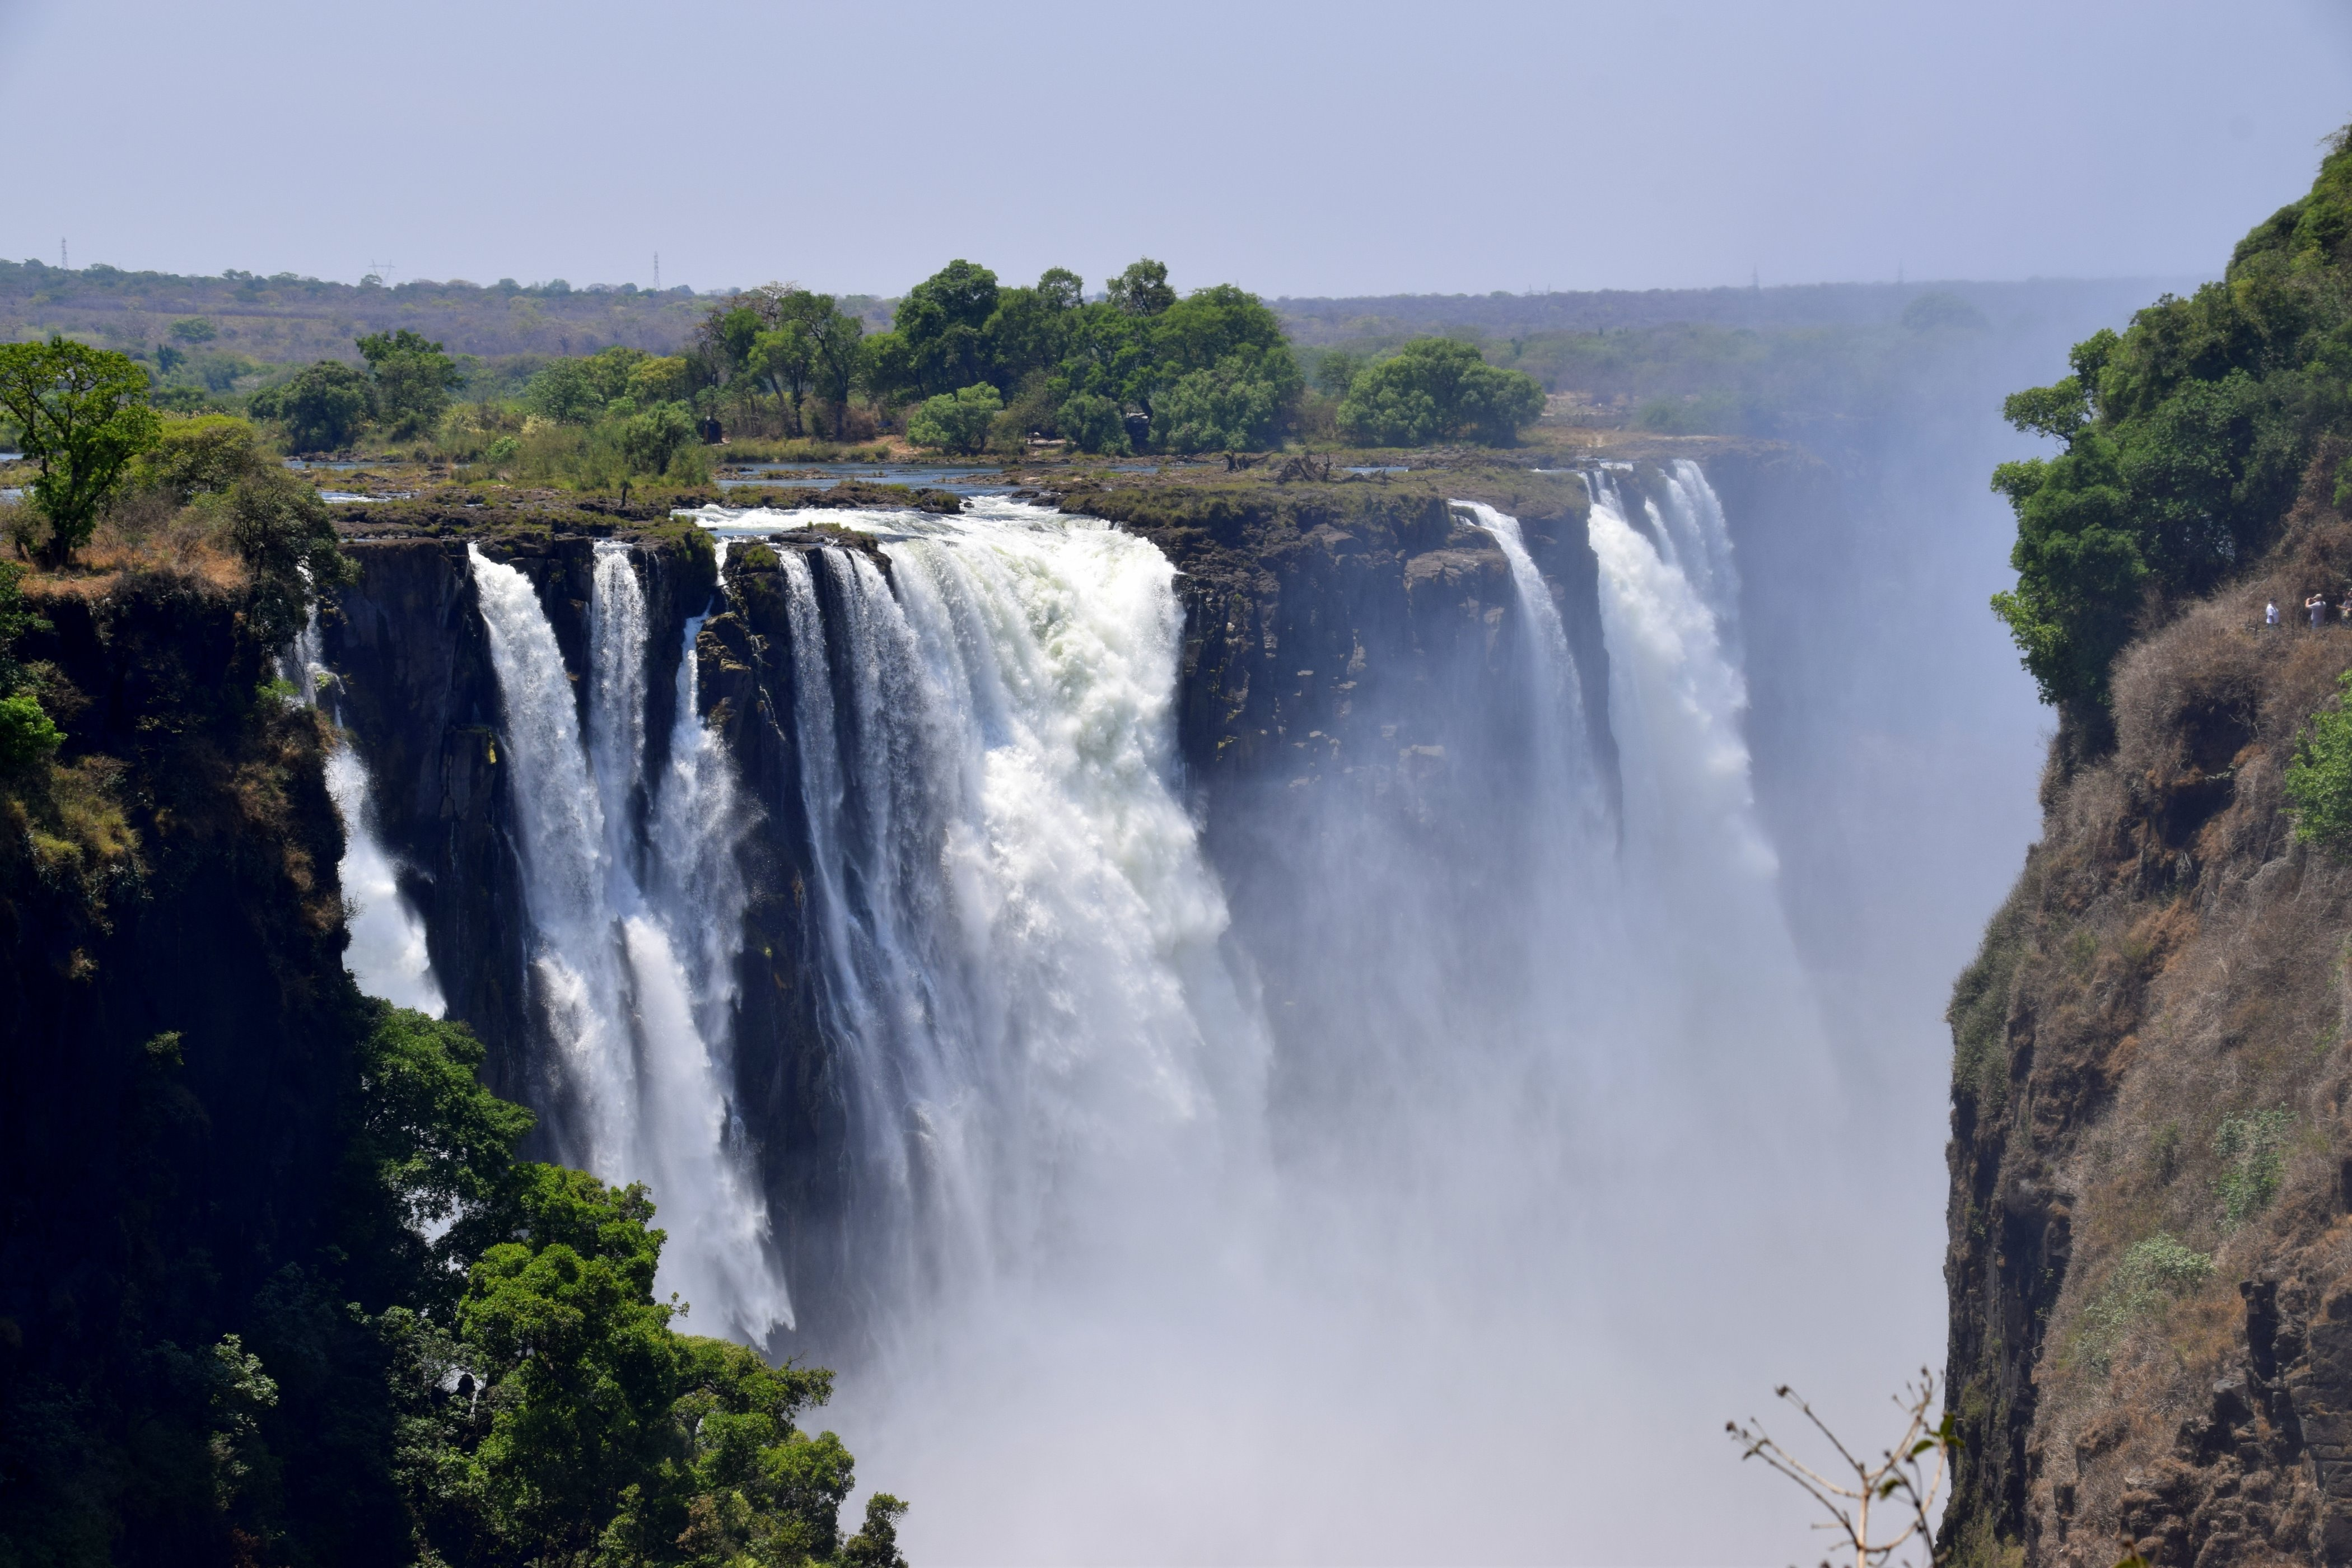 Zambia, a double-edged welcome